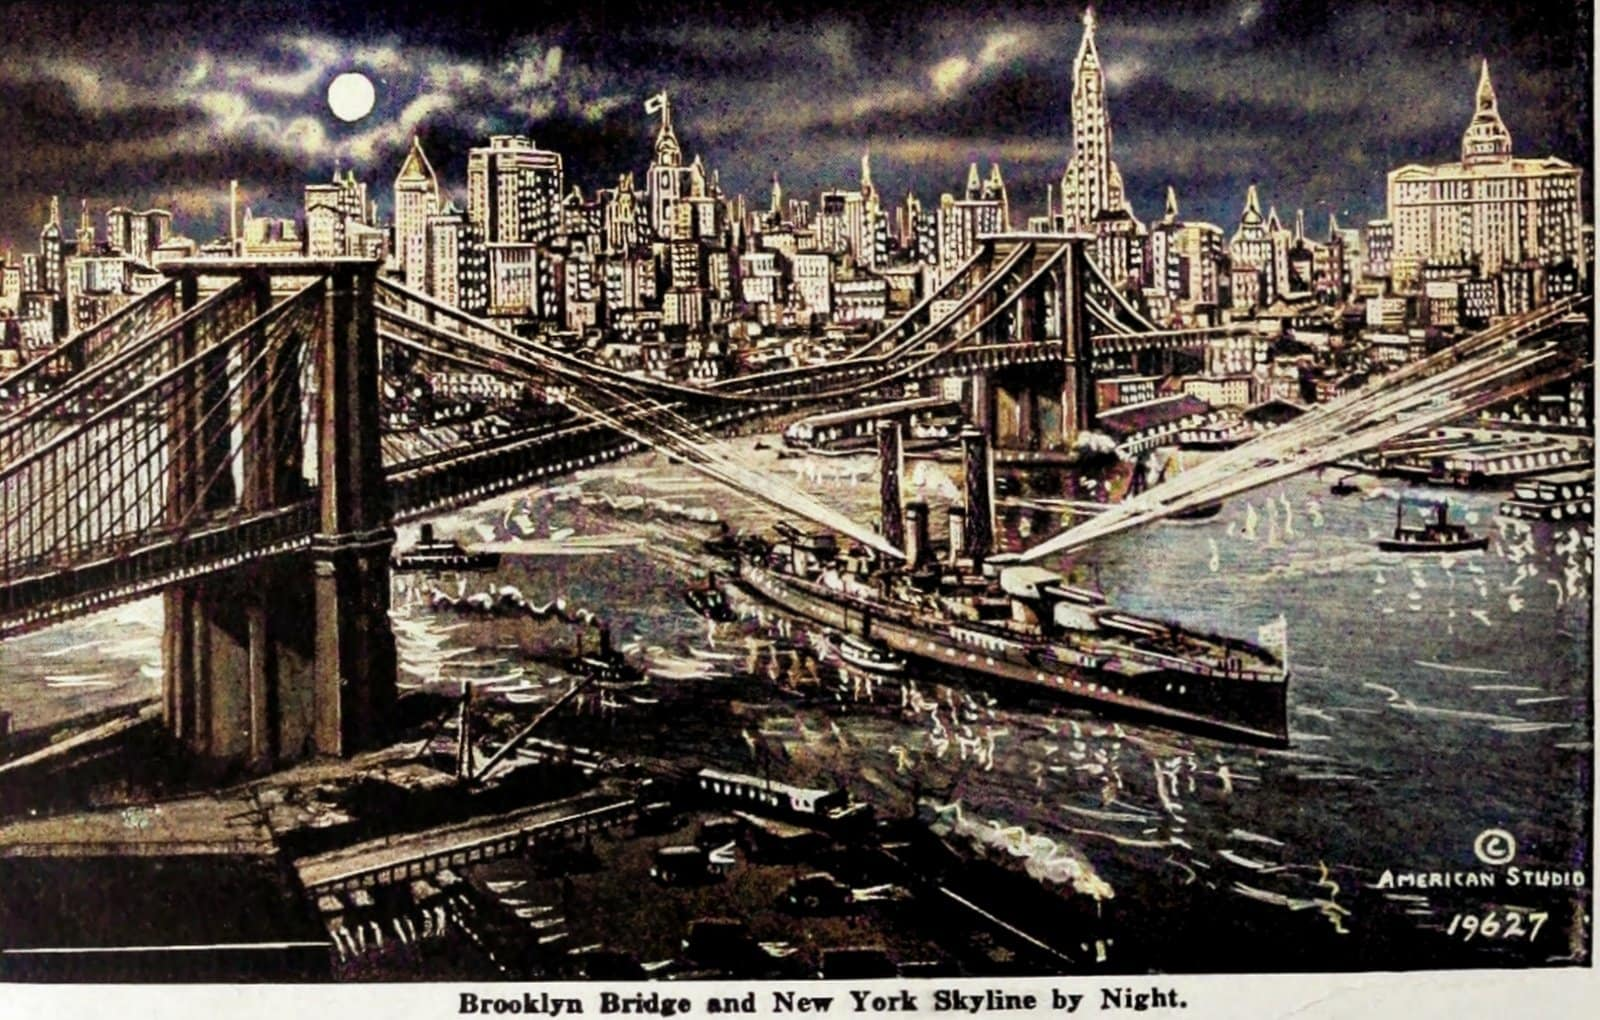 Art of Brooklyn Bridge and New York skyline at night - Colorized (1920s)